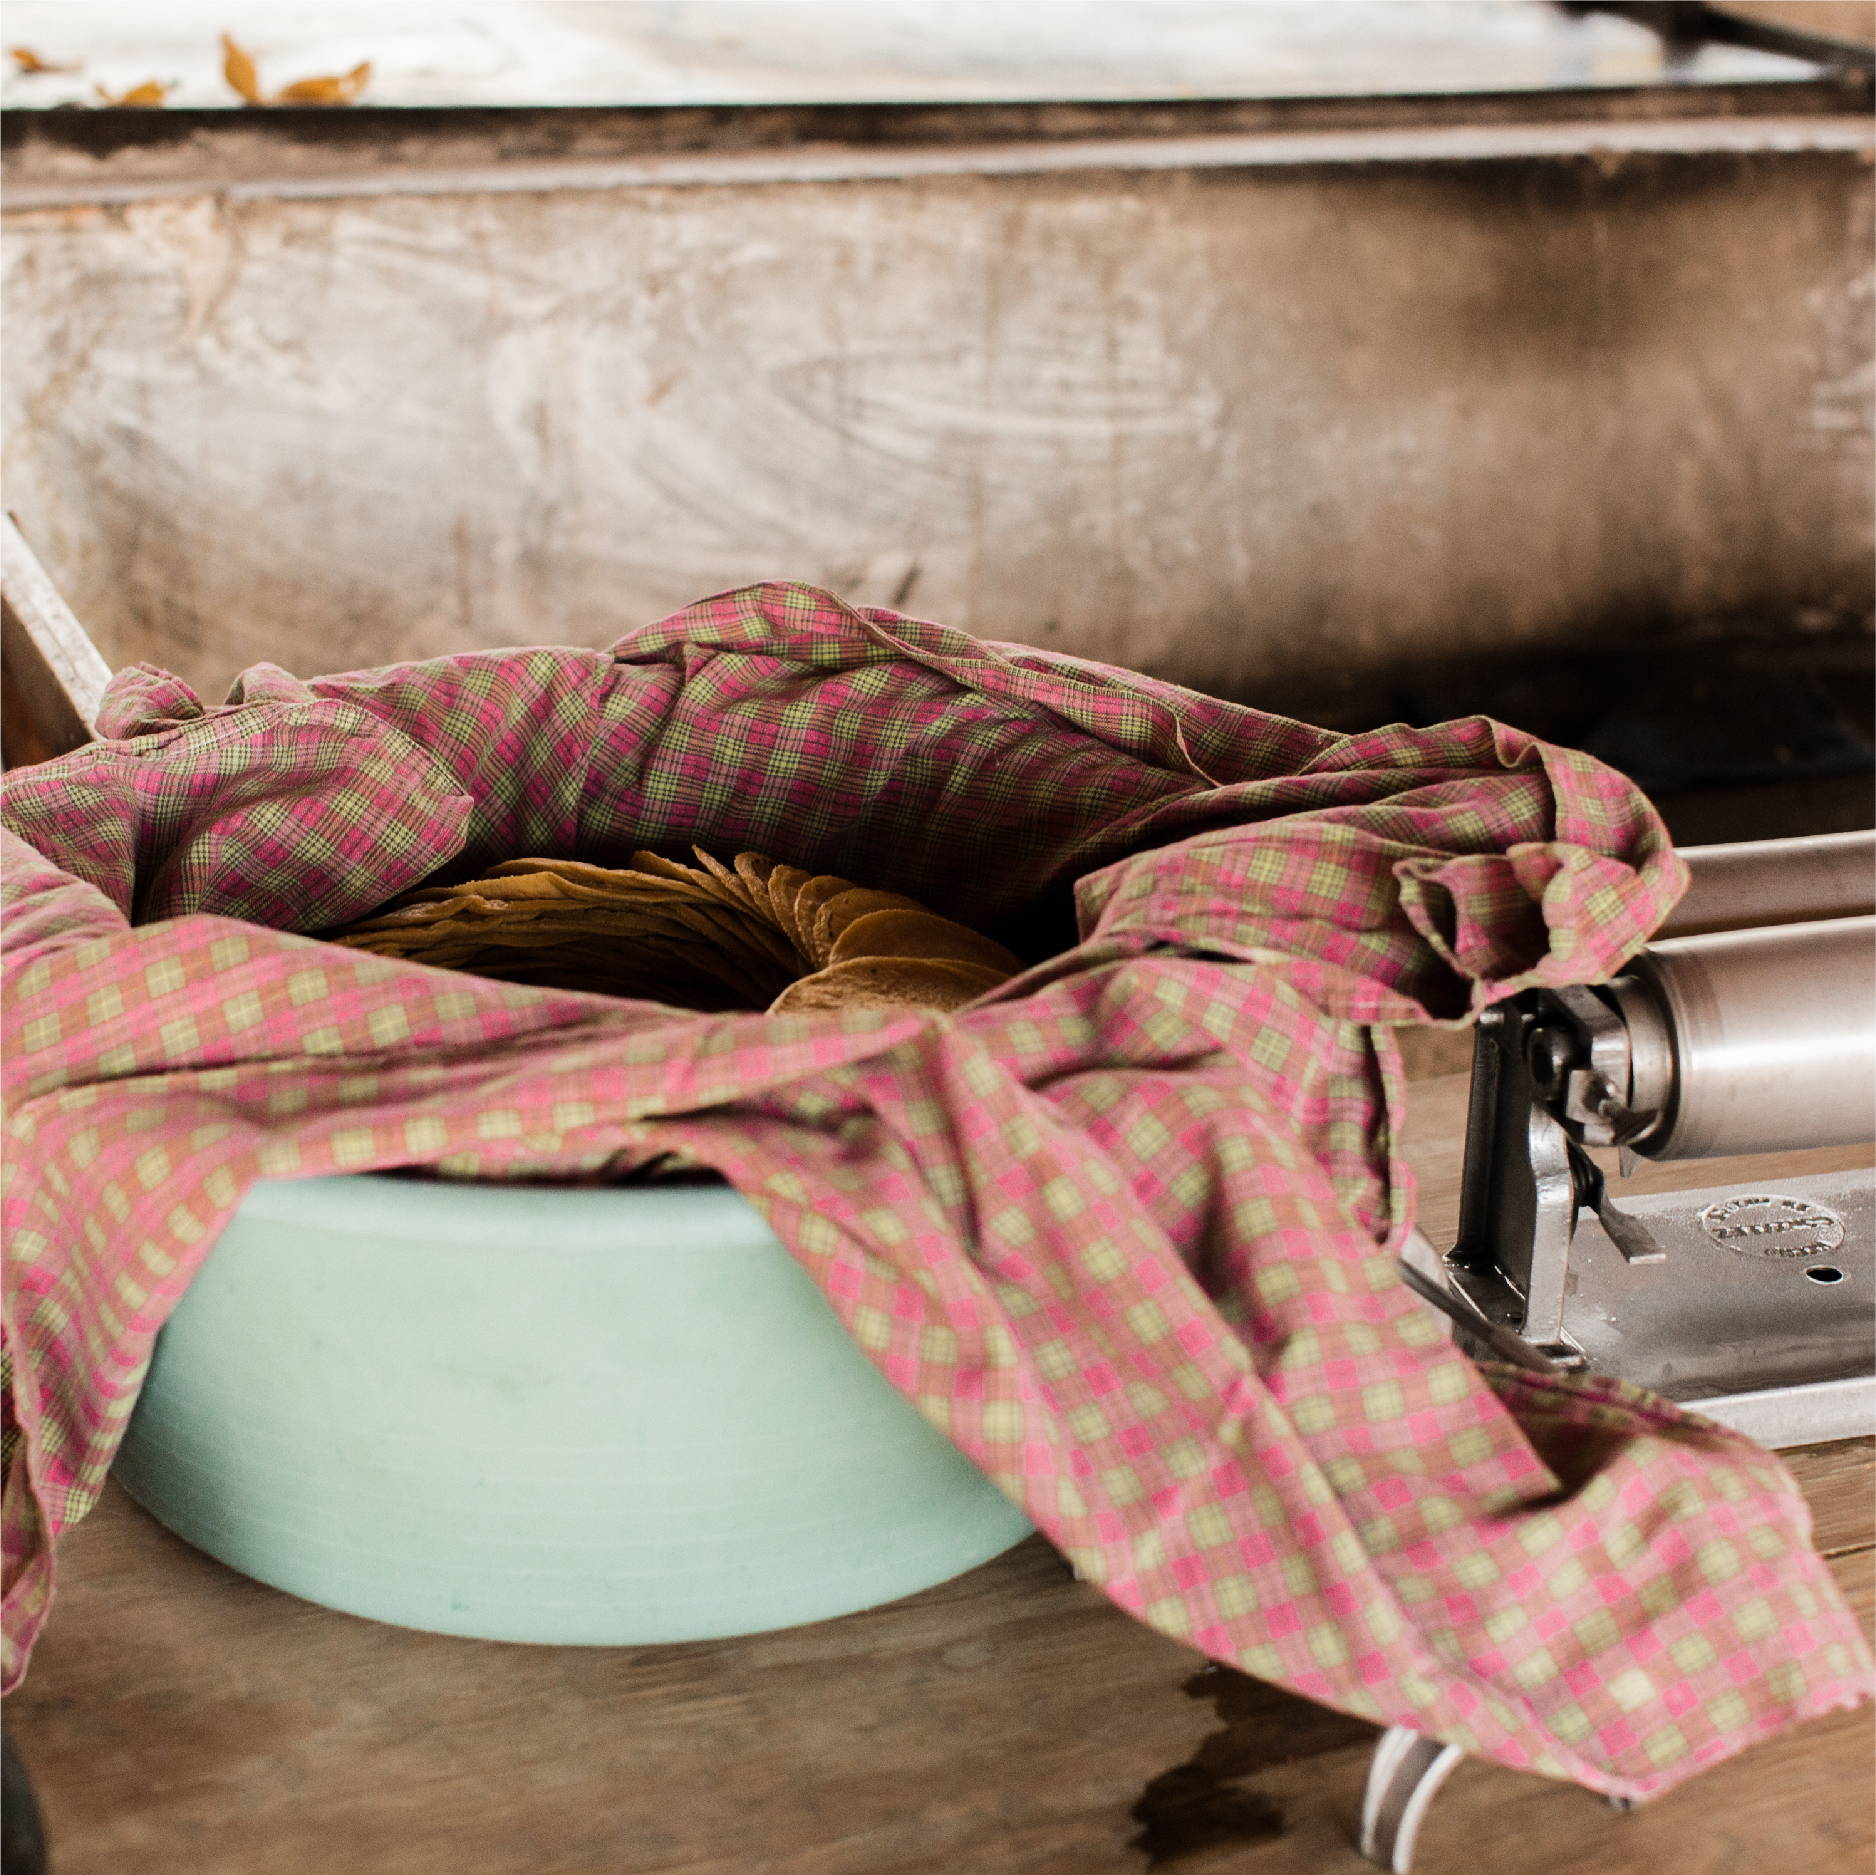 A large stack of tortillas sit wrapped in a large container next to a tortilla press in Honduras.